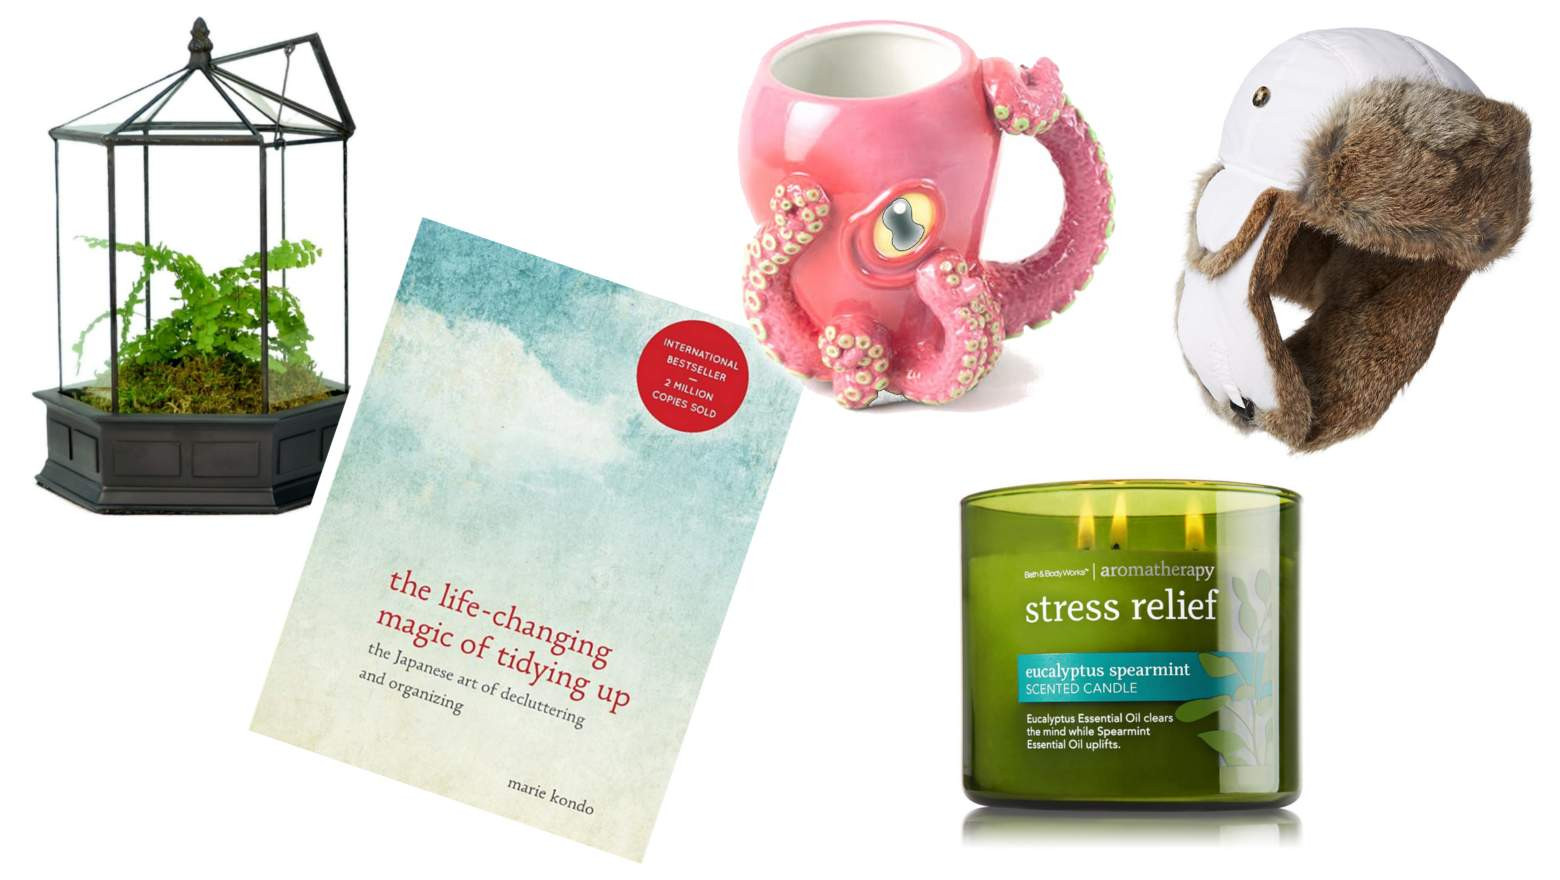 Best ideas about Gift Ideas For Son'S Girlfriend . Save or Pin Top 20 Best Gifts for Your Girlfriend Now.